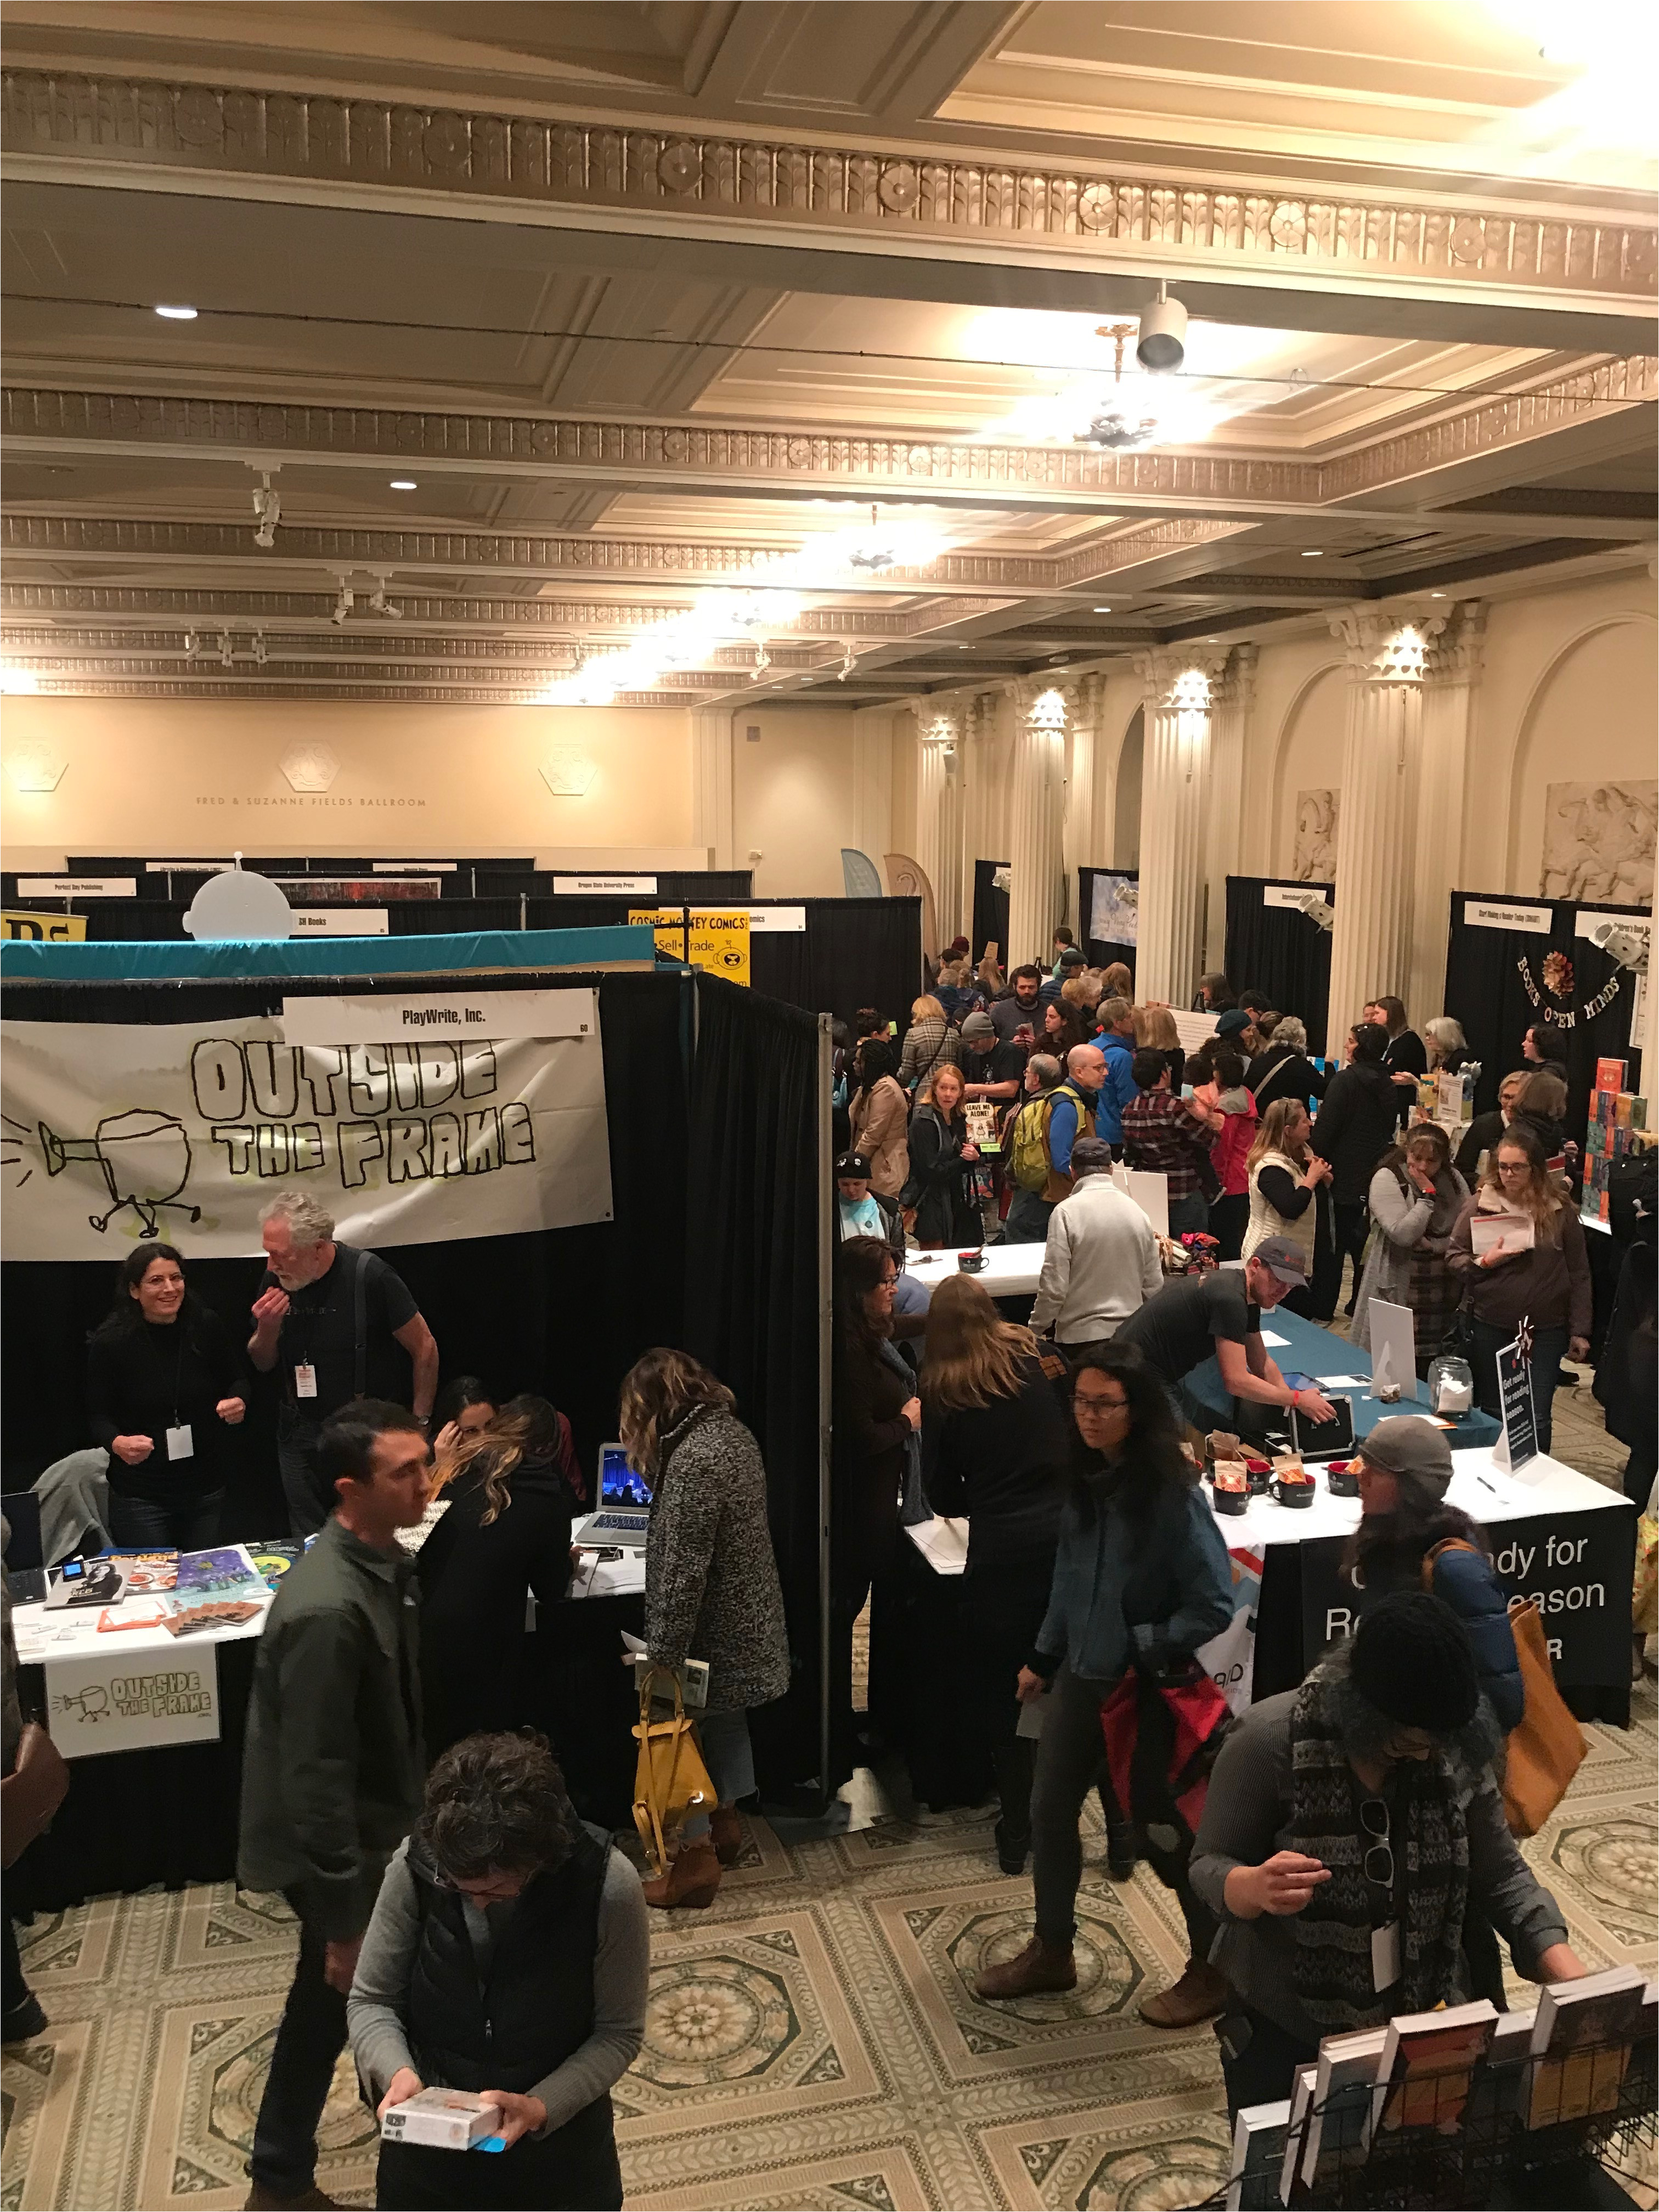 november 10 in downtown portland and featured over 100 authors who shared their work at readings panels and lectures read on to hear about our team